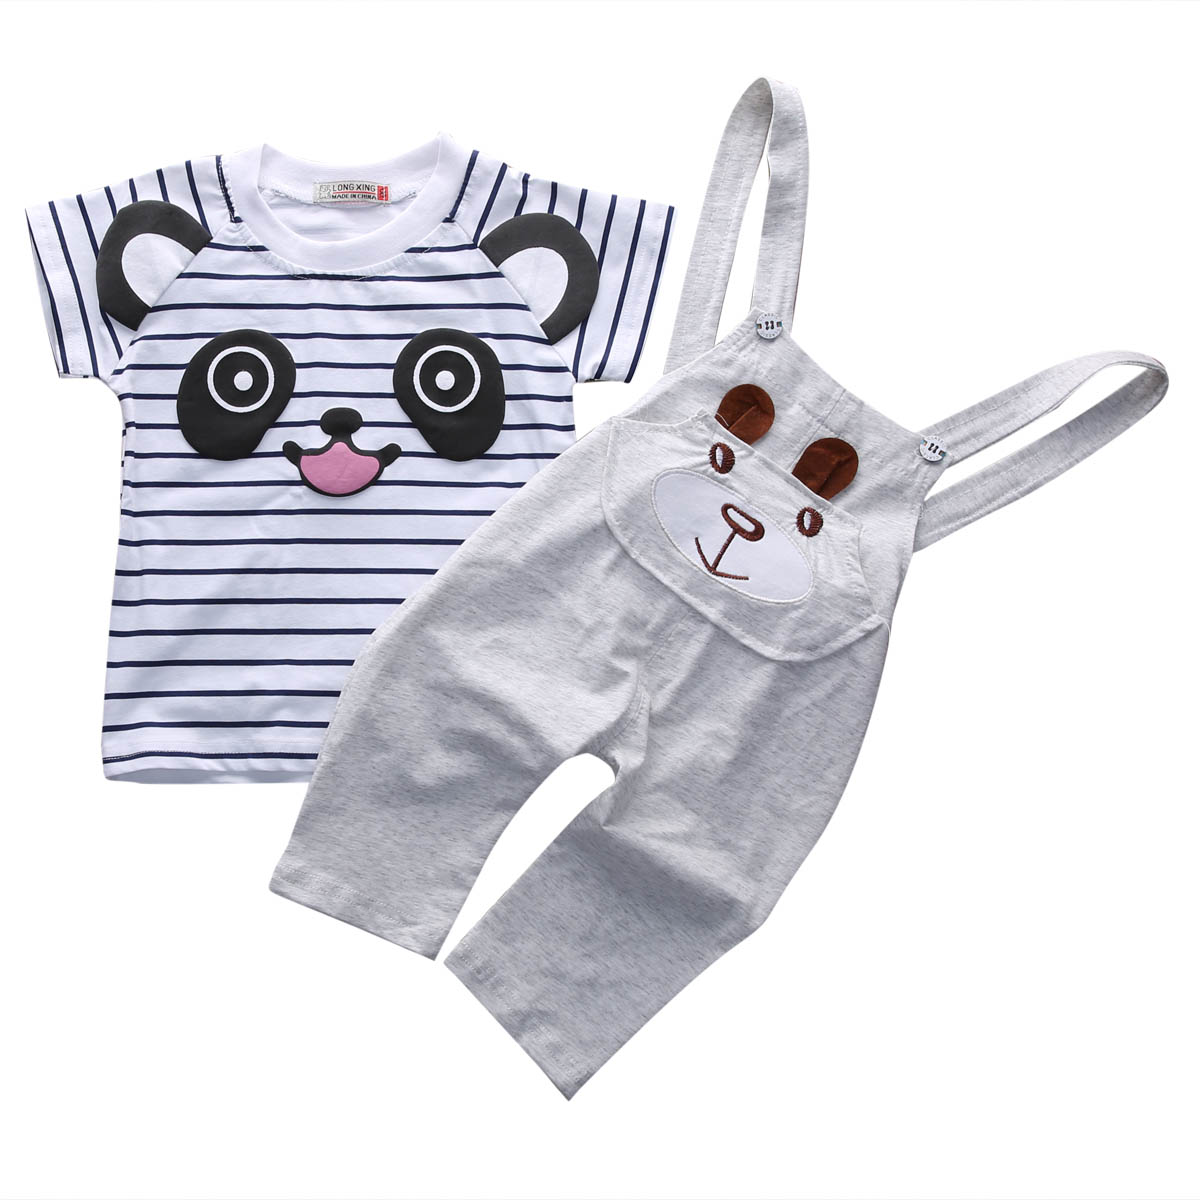 Cute 2PCS Newborn Kids Baby Boy Girls T-shirt Tops+Pants Overalls Outfits Clothes Set Summer Striped Tees Clothing cute newborn baby boy girl clothes set bear cotton children clothing summer costume overalls outfits t shirt bib pants 2pcs set